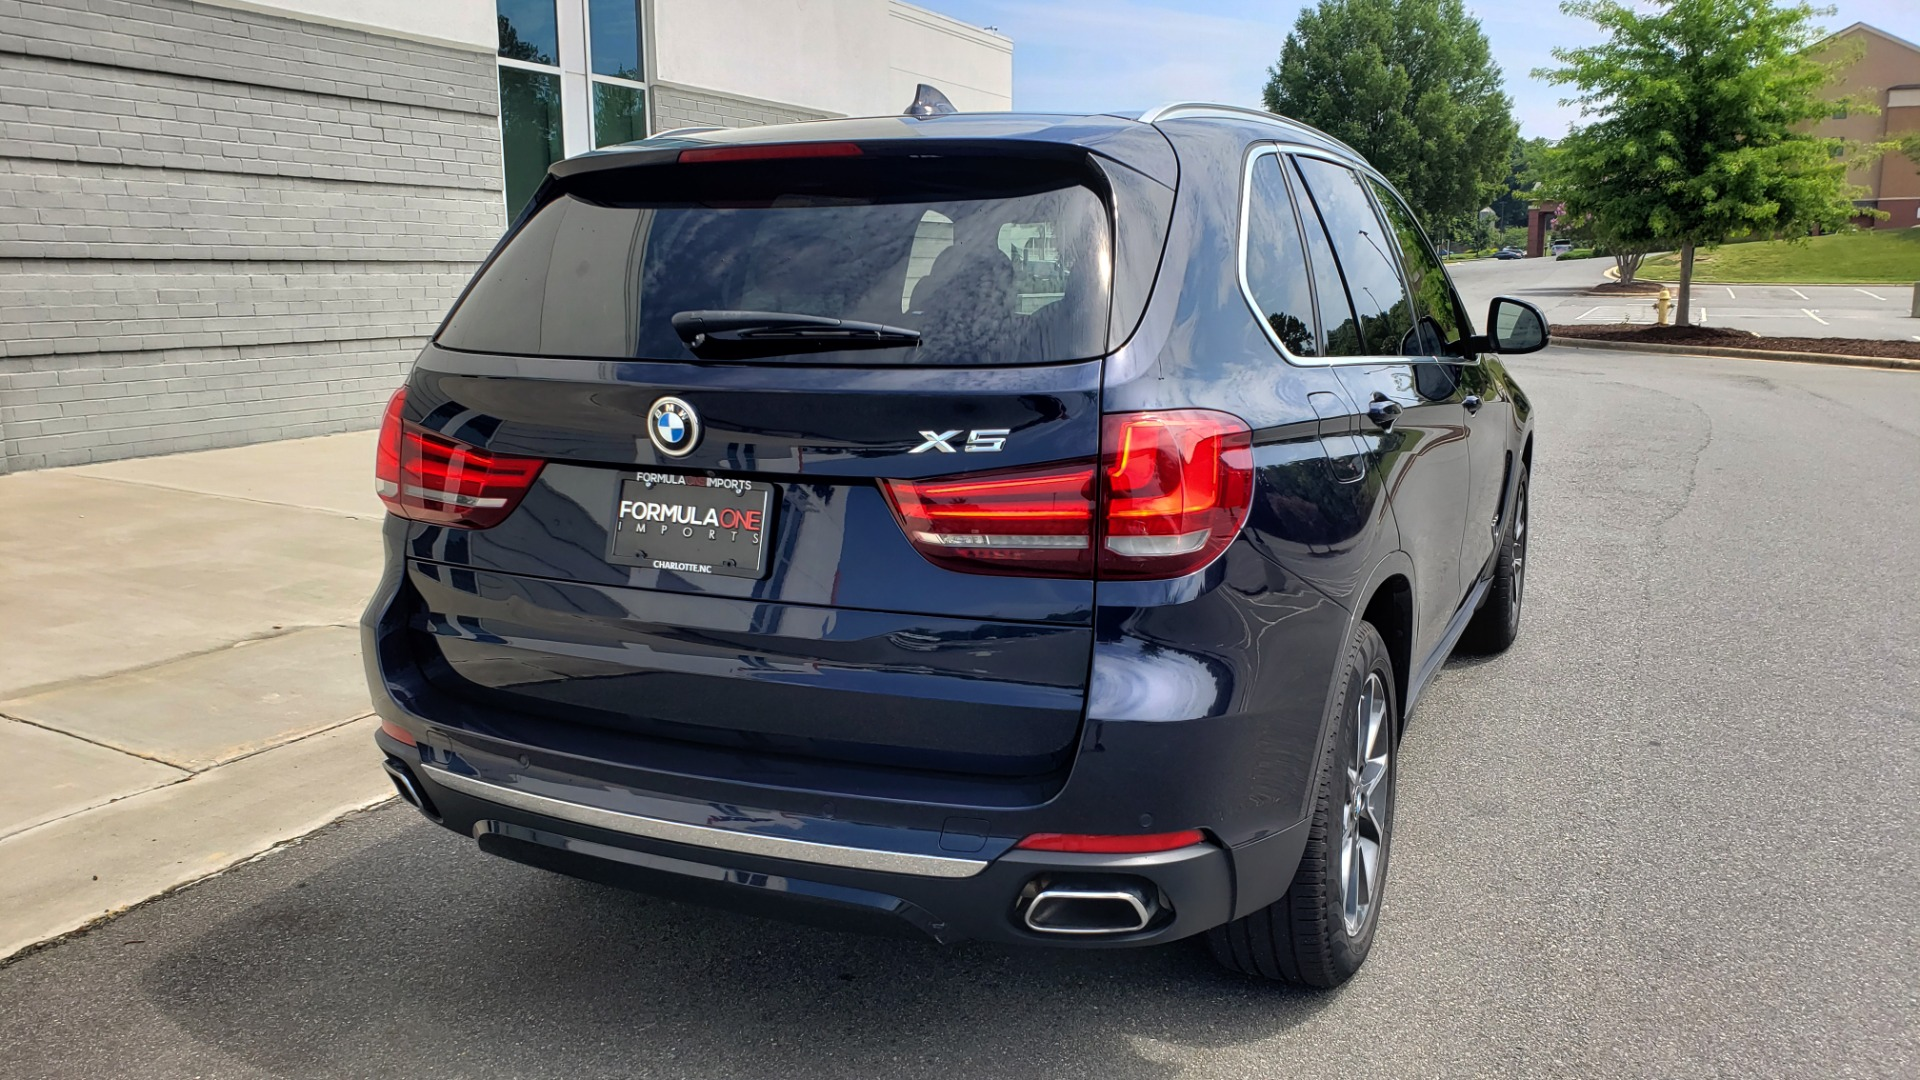 Used 2018 BMW X5 XDRIVE35I PREMIUM / LUXURY / DRVR ASST / HUD / LANE WARNING / REARVIEW for sale $43,695 at Formula Imports in Charlotte NC 28227 2